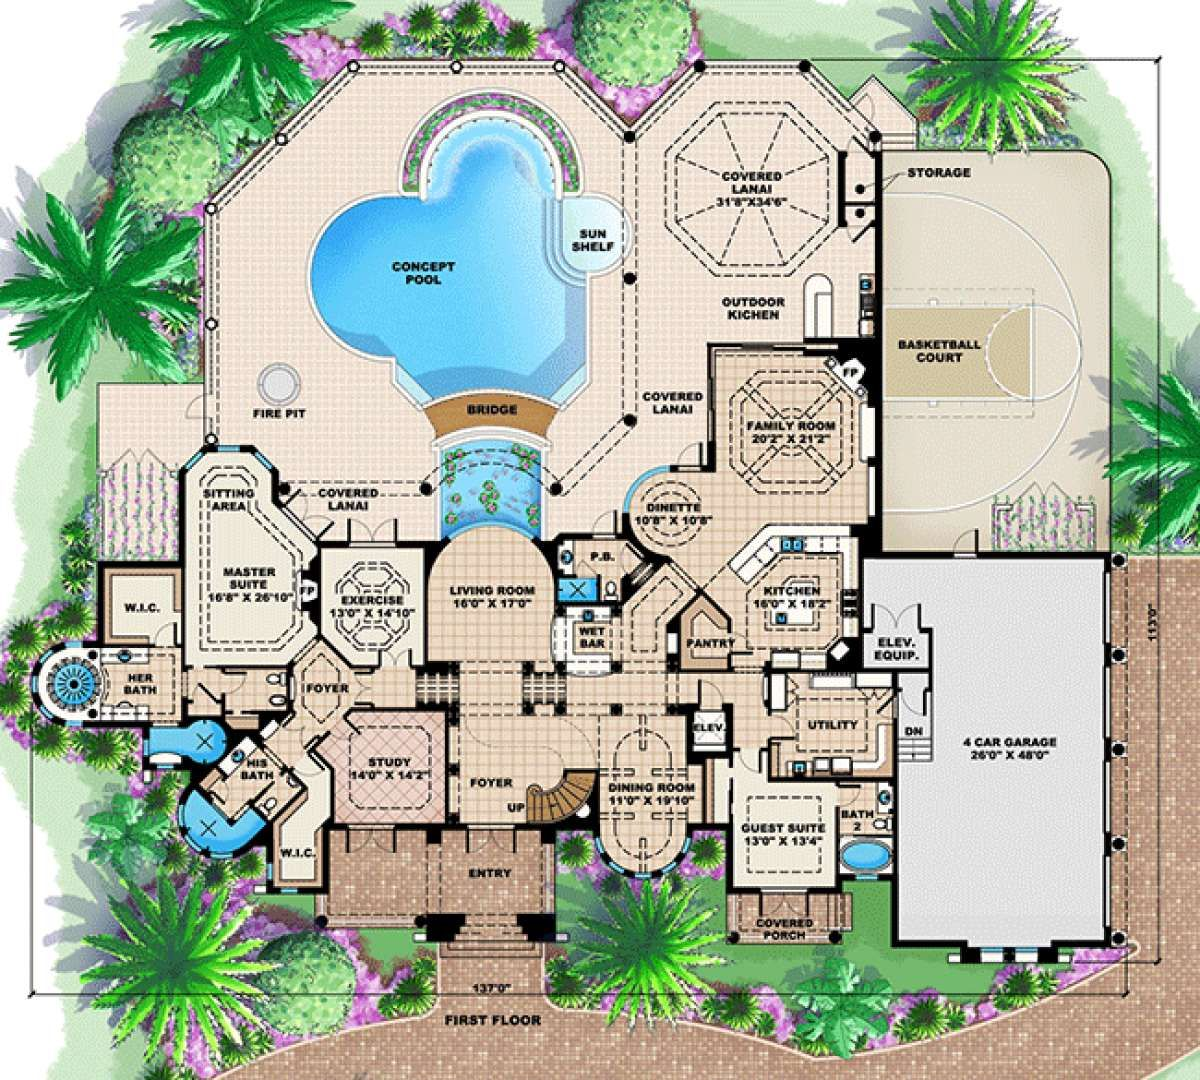 House Plan 1018 00182 Florida Plan 6 295 Square Feet 4 5 Bedrooms 7 Bathrooms In 2021 House Plans Floor Plan Design House Floor Plans